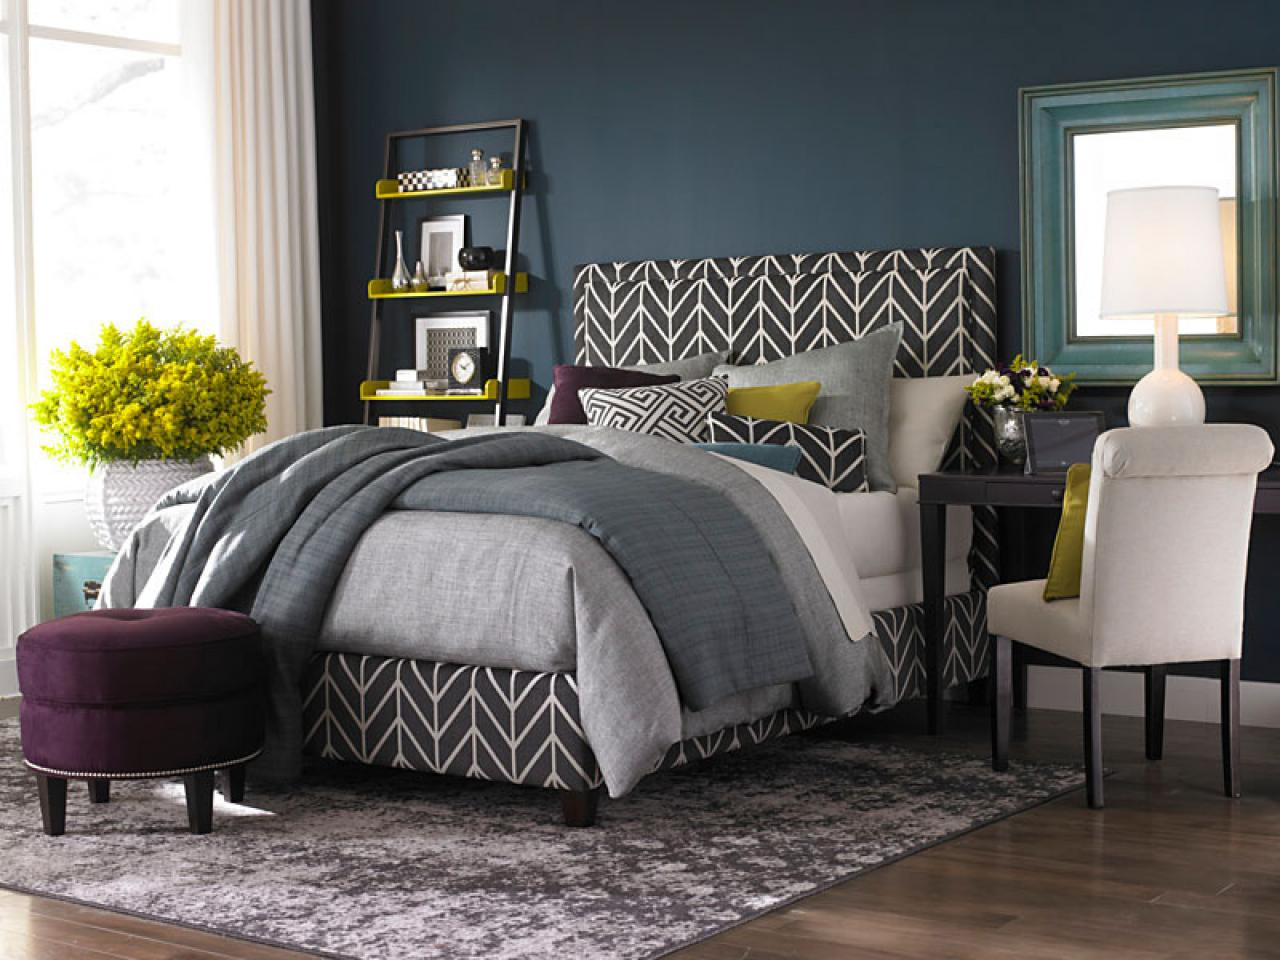 Stylish sexy bedrooms bedrooms bedroom decorating for Bedroom room decor ideas